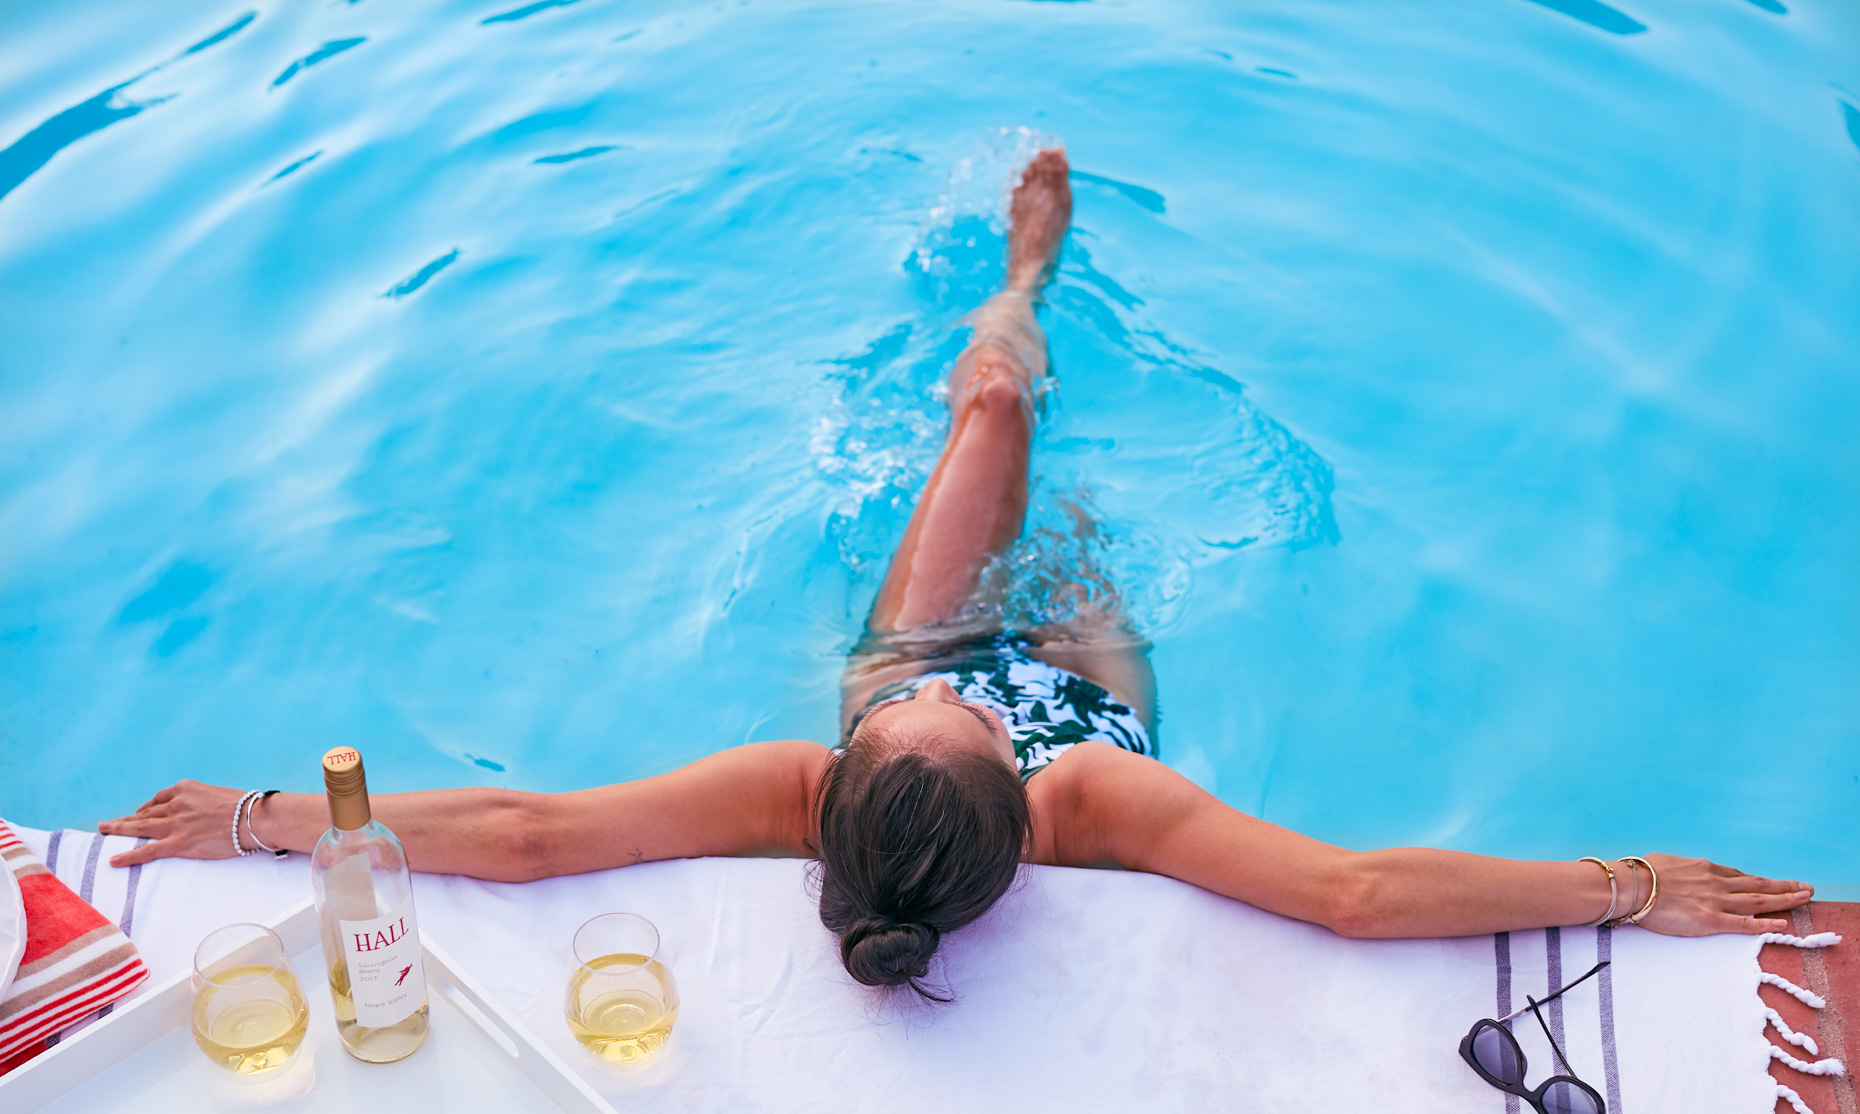 Woman relaxing in water at edge of pool with leg at the surface of the pool white wine  and sunglasses at edge of pool in Napa California at Senza Hotel and spa  San Francisco lifestyle photographer